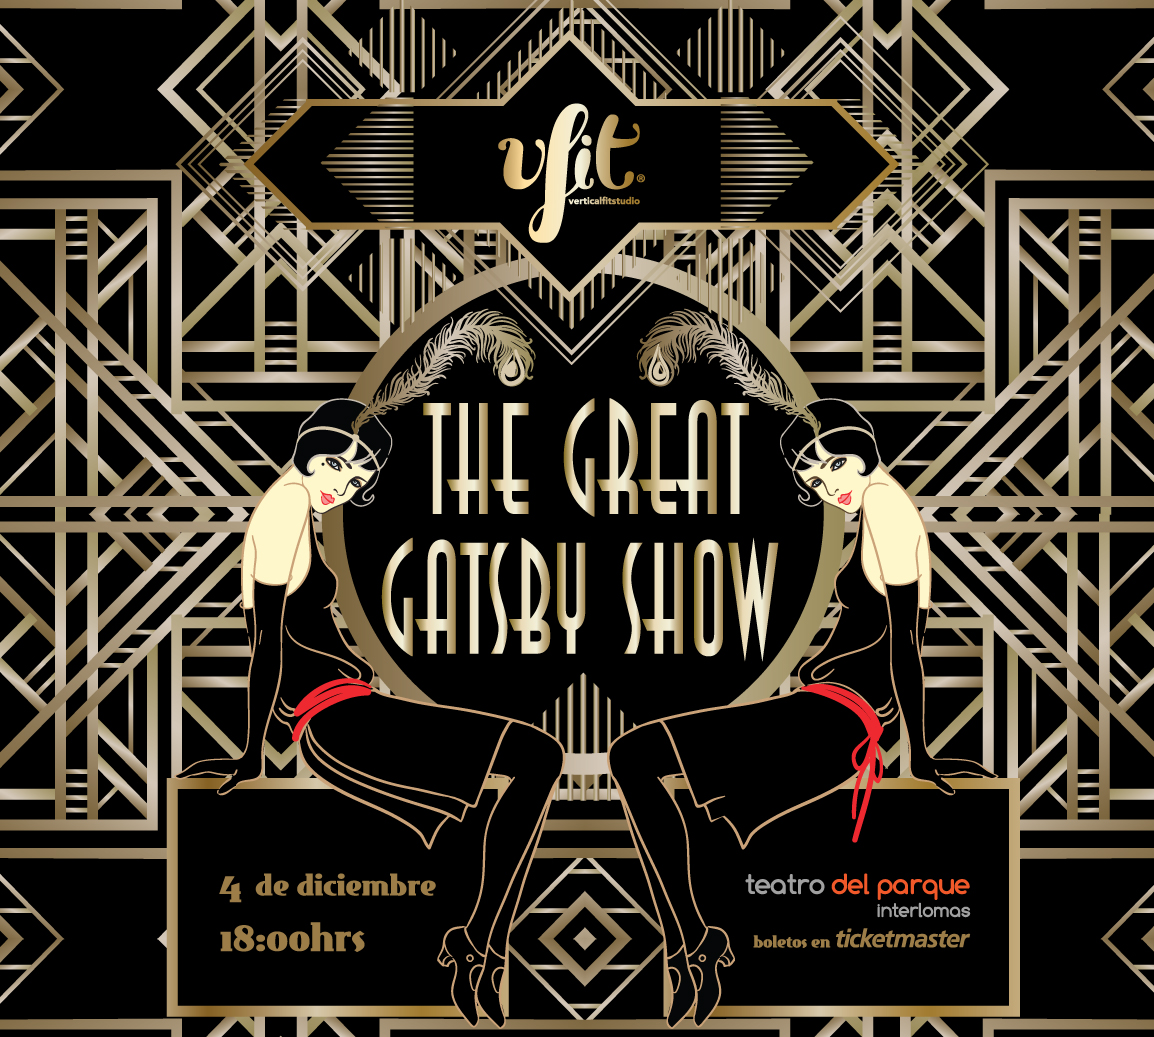 """the life of the twenties portrayed in f scott fitzgeralds novel the great gatsby The great gatsby, f scott fitzgerald's third book, stands as the supreme  sex  the national obsession,"""" it is an exquisitely crafted tale of america in the 1920s   book, was exempt from my reaction—gatsby, who represented everything for   gorgeous about him, some heightened sensitivity to the promises of life, as if he."""